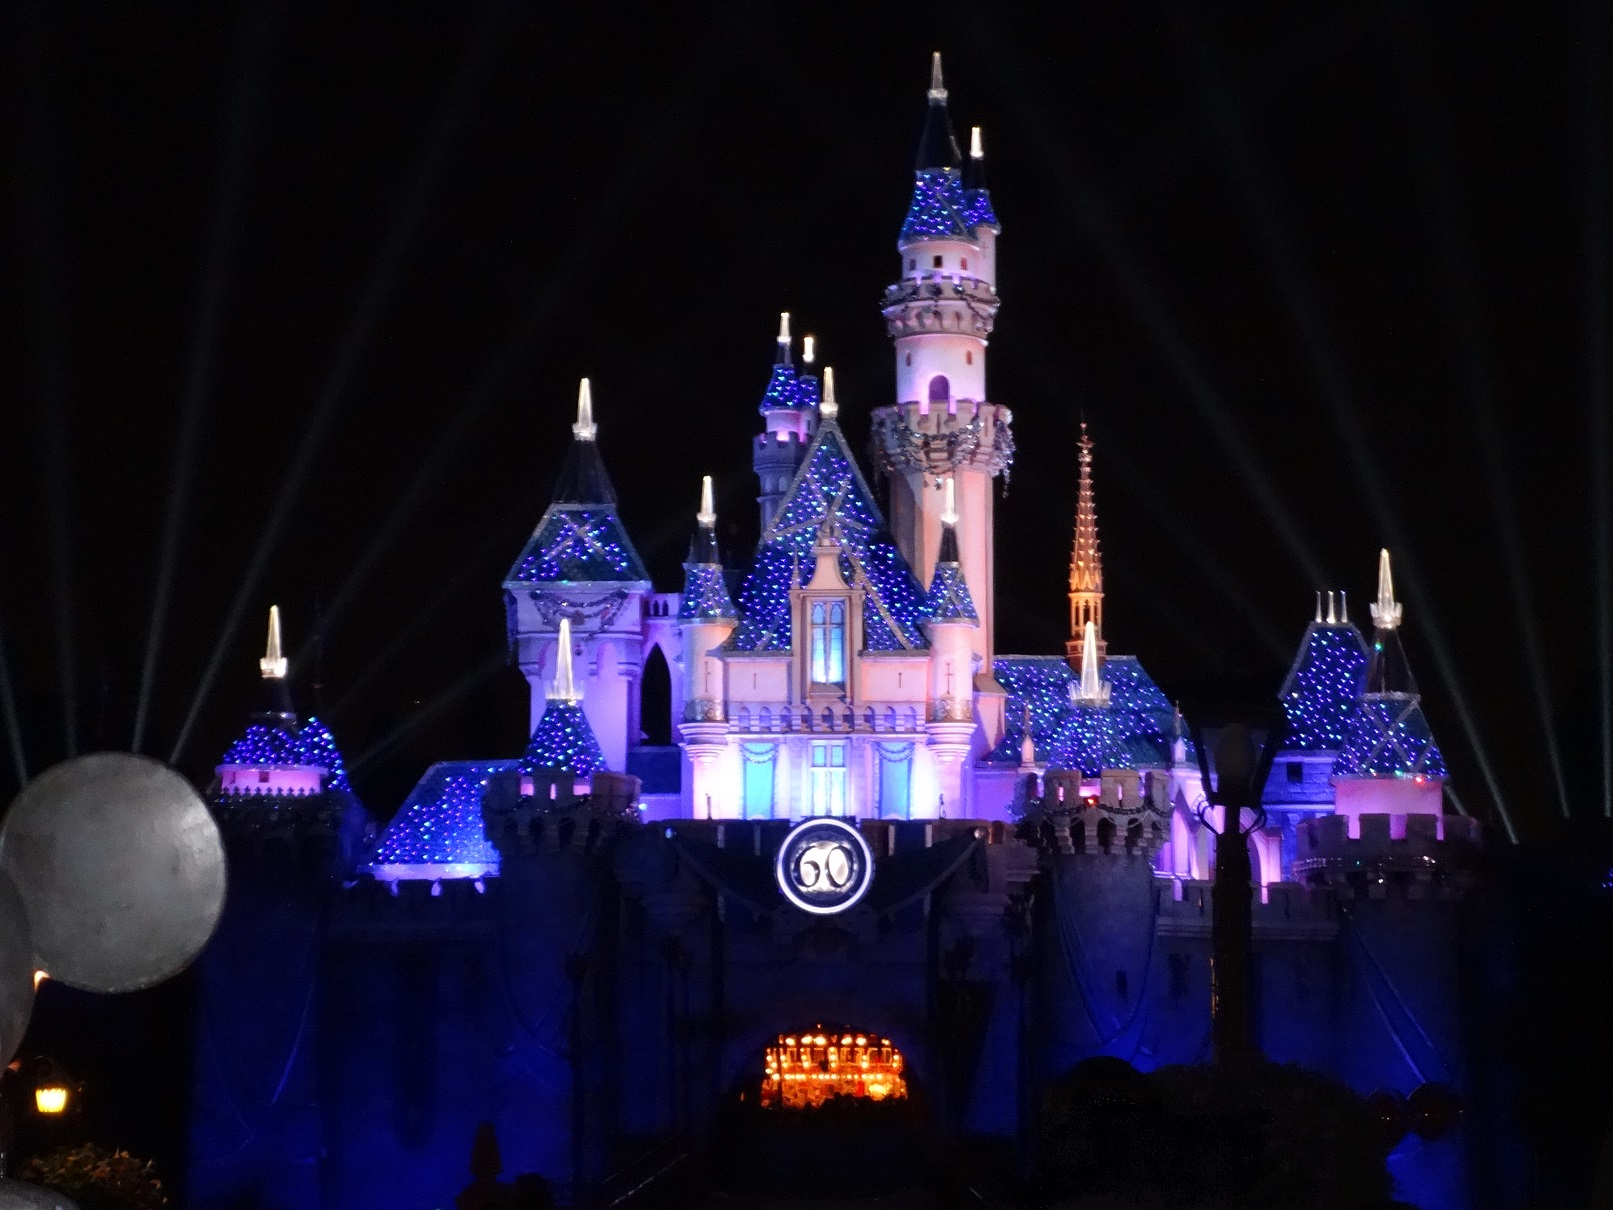 """disneyland not the happiest place on Sarah and ryan, """"oh the places you will go"""" dr suess you two have gone to do many interesting and beautiful places i am hoping that next summer liz and i will make our way there."""